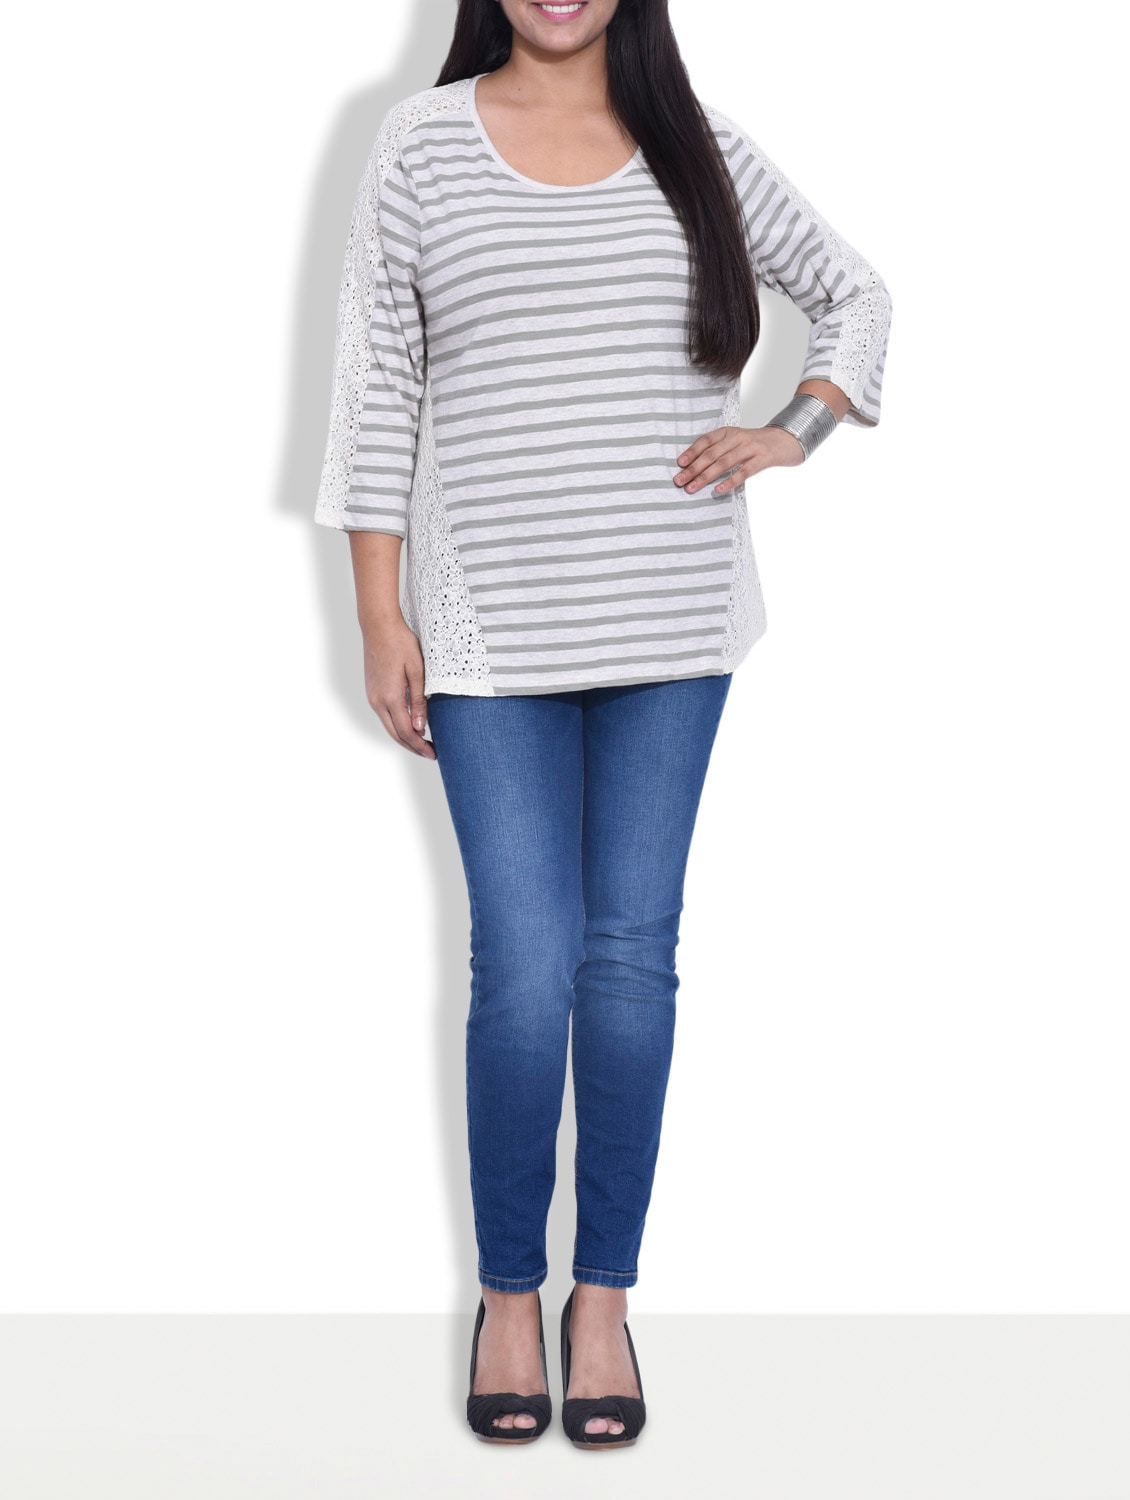 white and grey striped cotton top